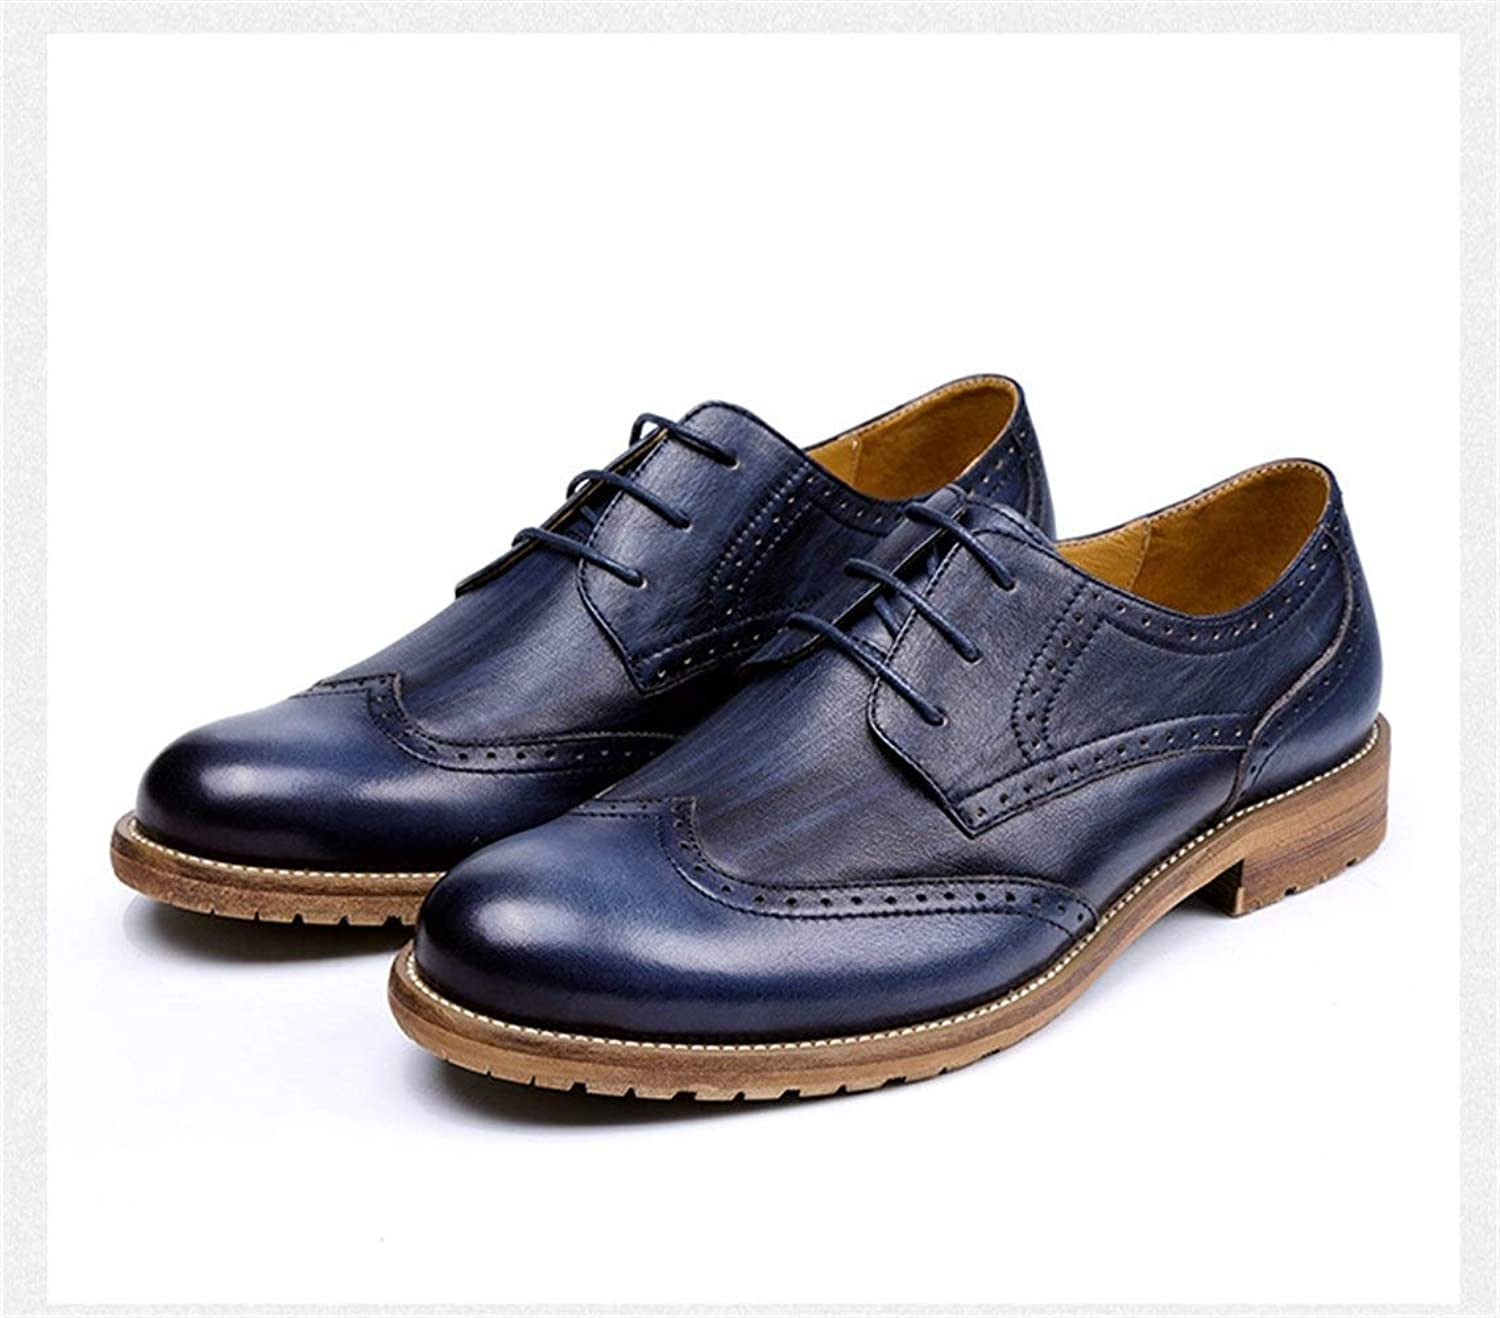 97ef83fb15ca5 Handmade New Men's shoes British Cowhide Breathable Men's laceup ...